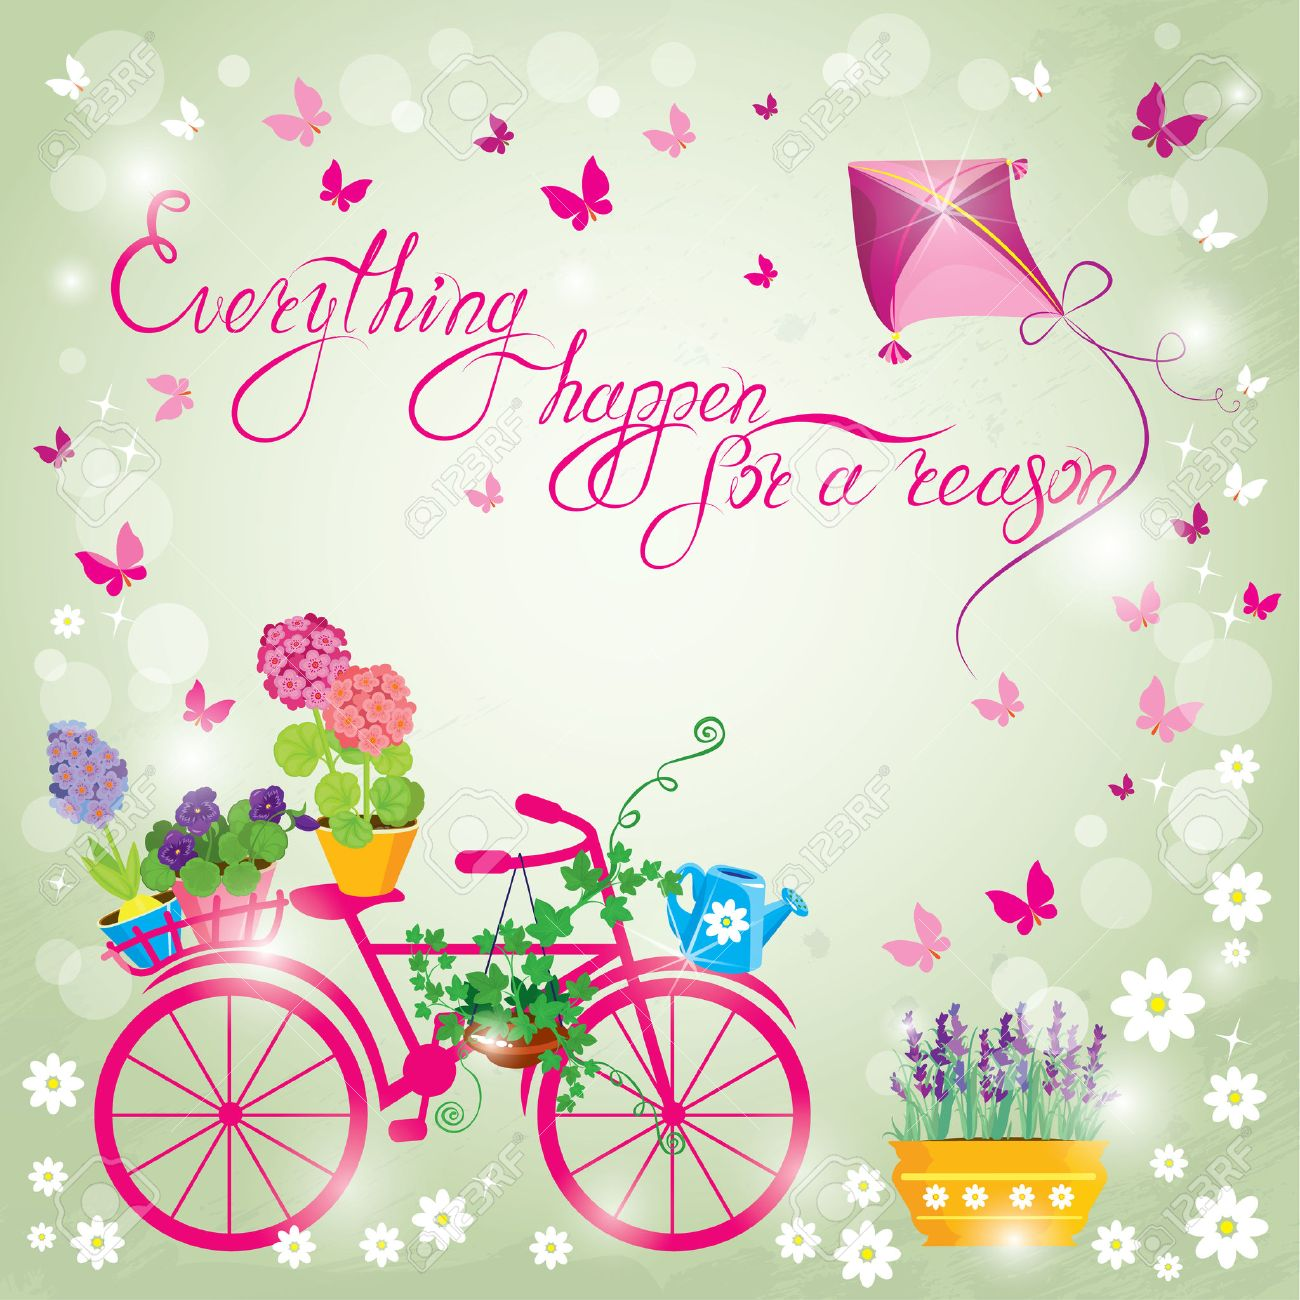 image with flowers in pots and bicycle on sky blue background